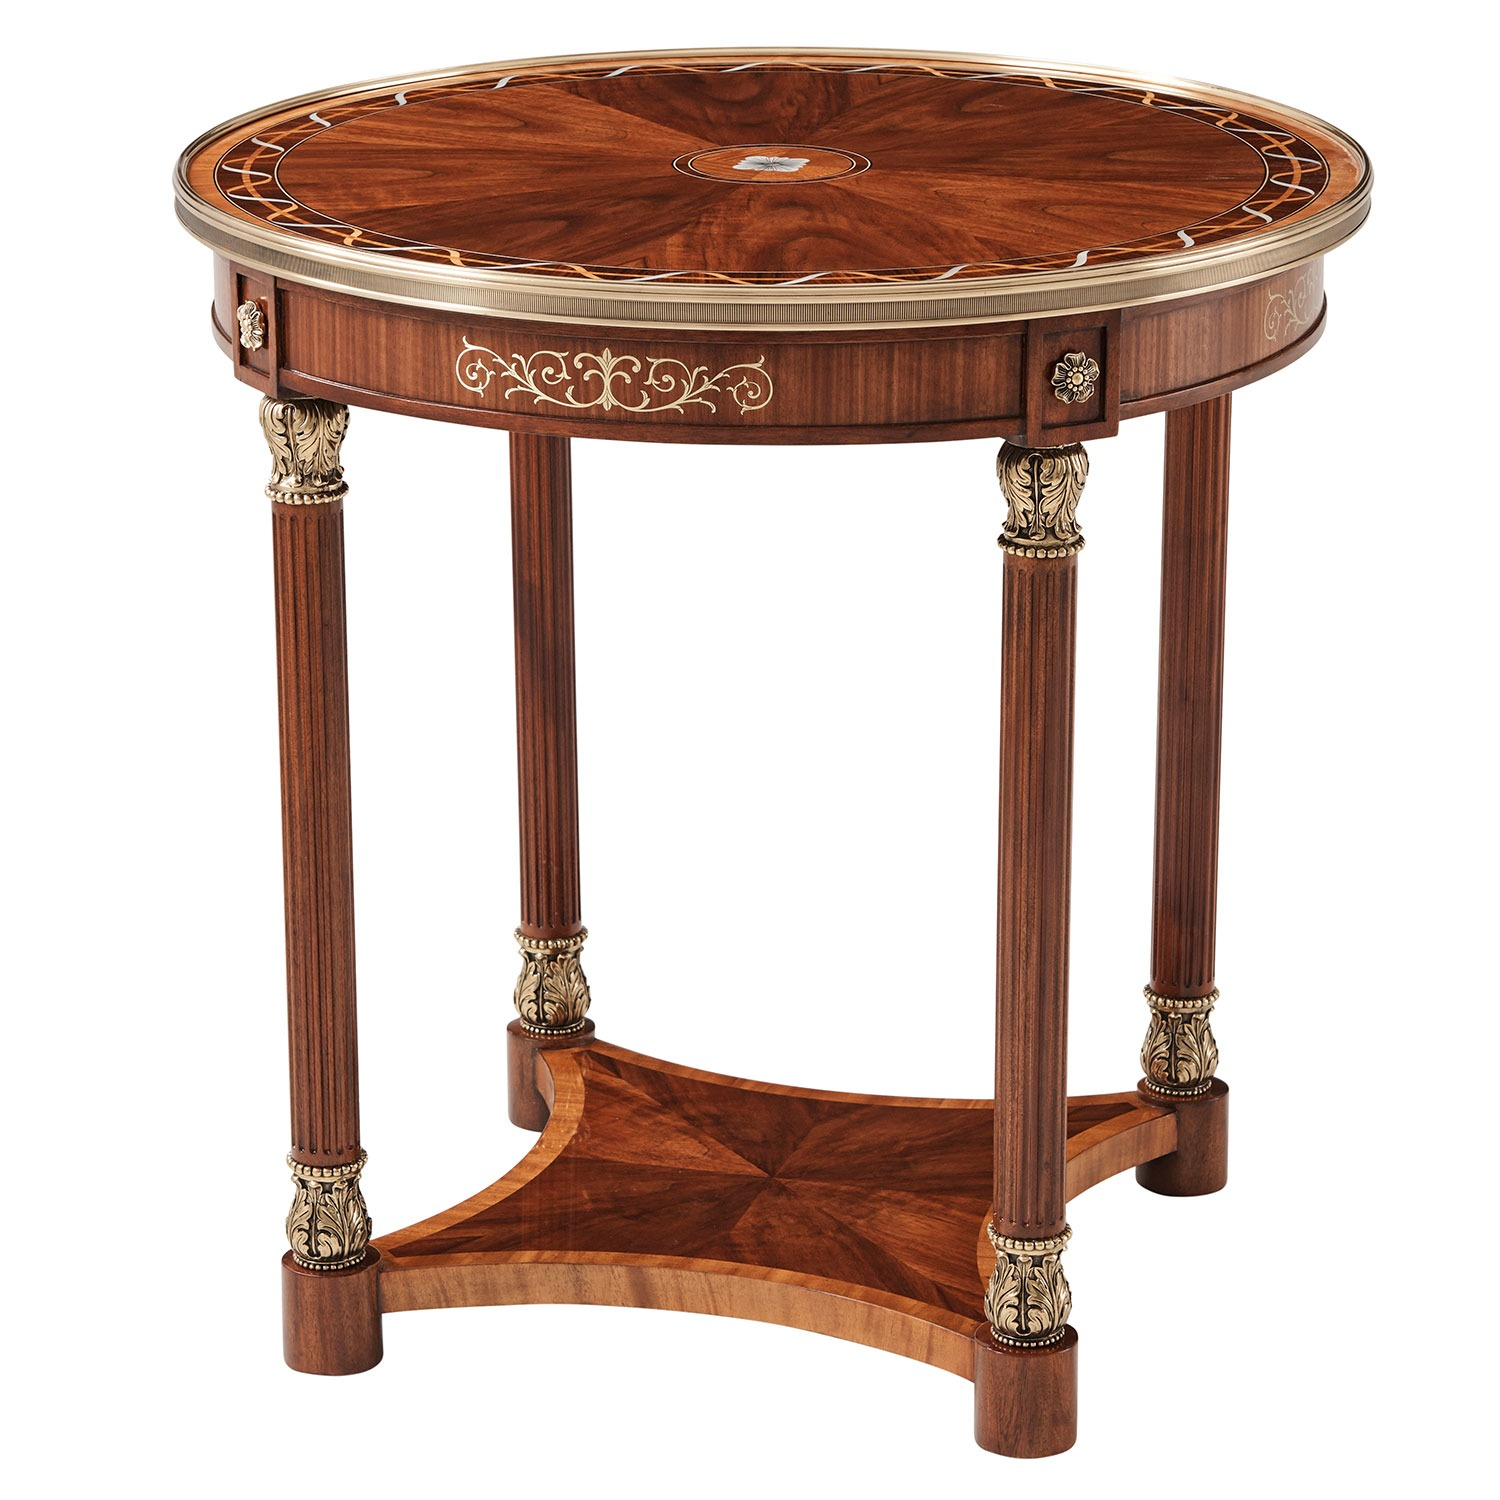 Mahogany Side or Lamp Table with floral inlay